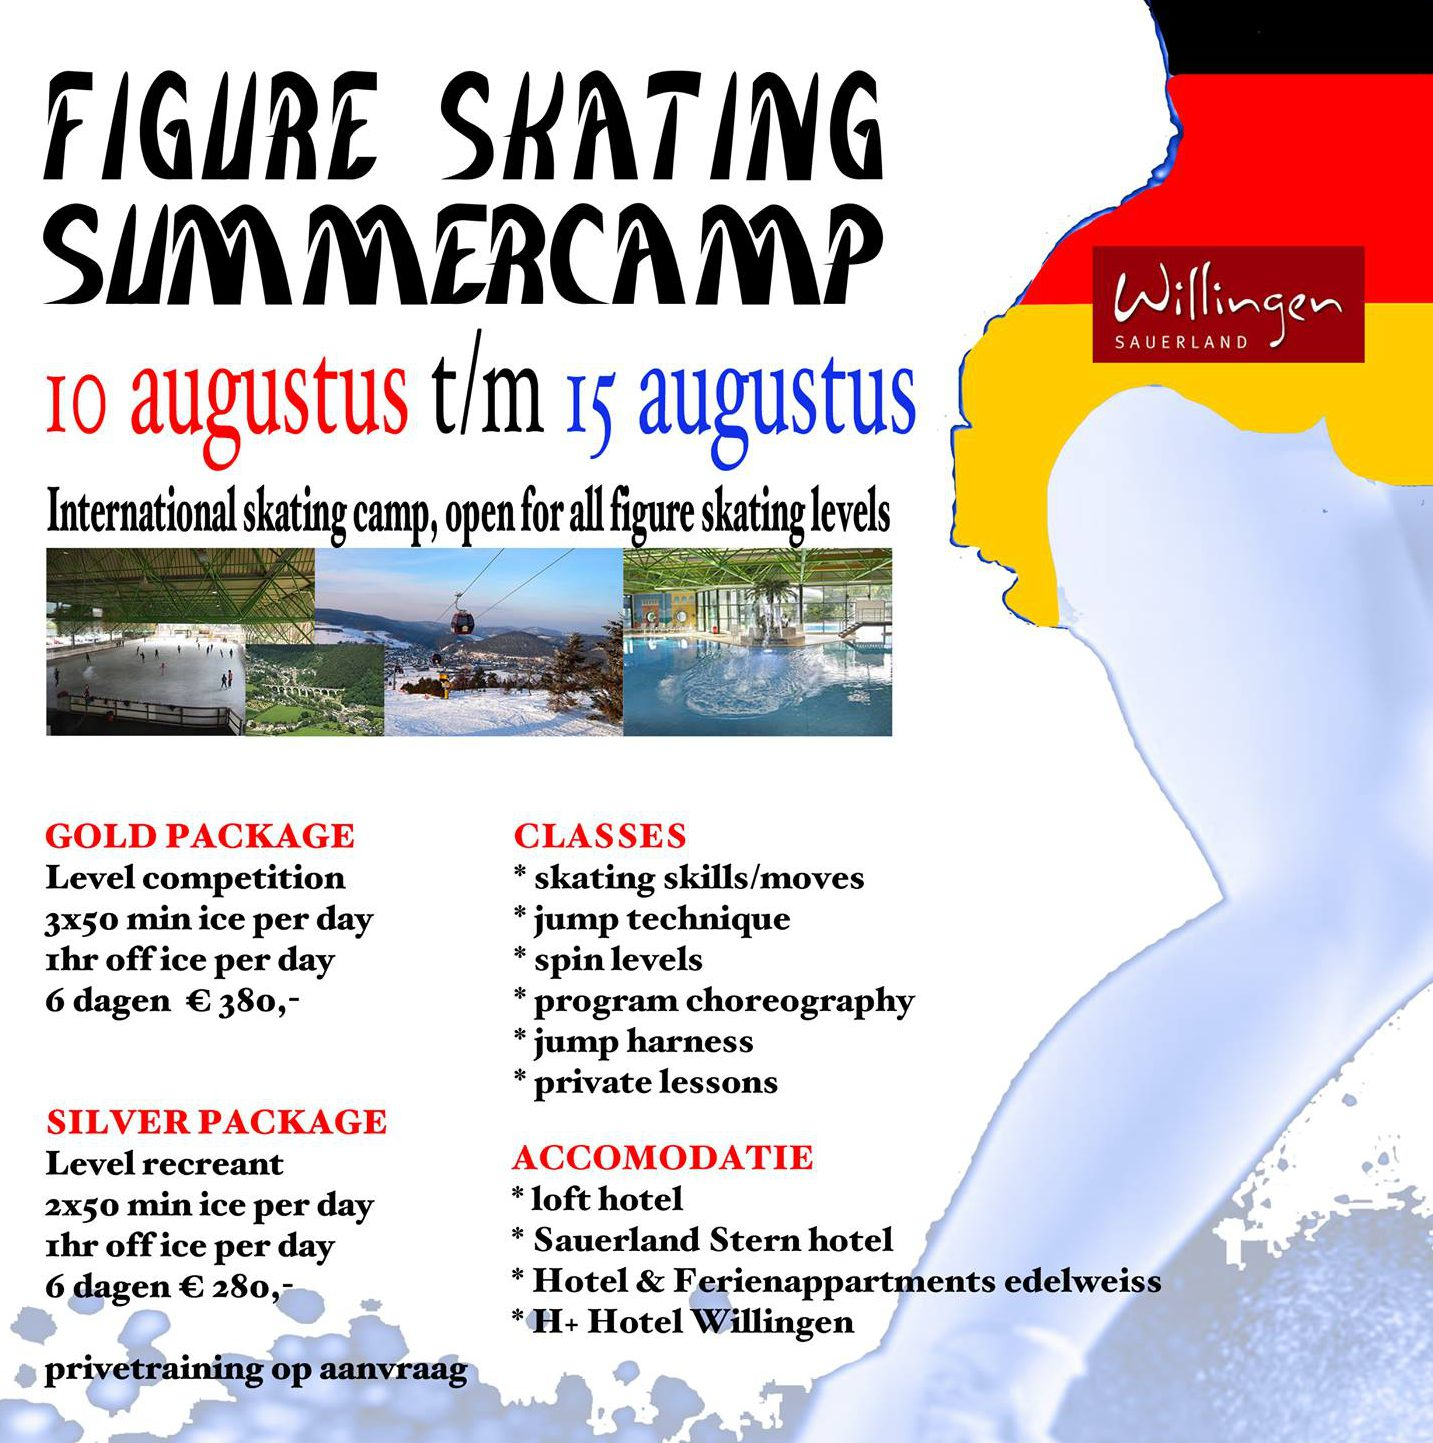 Summercamp Willingen